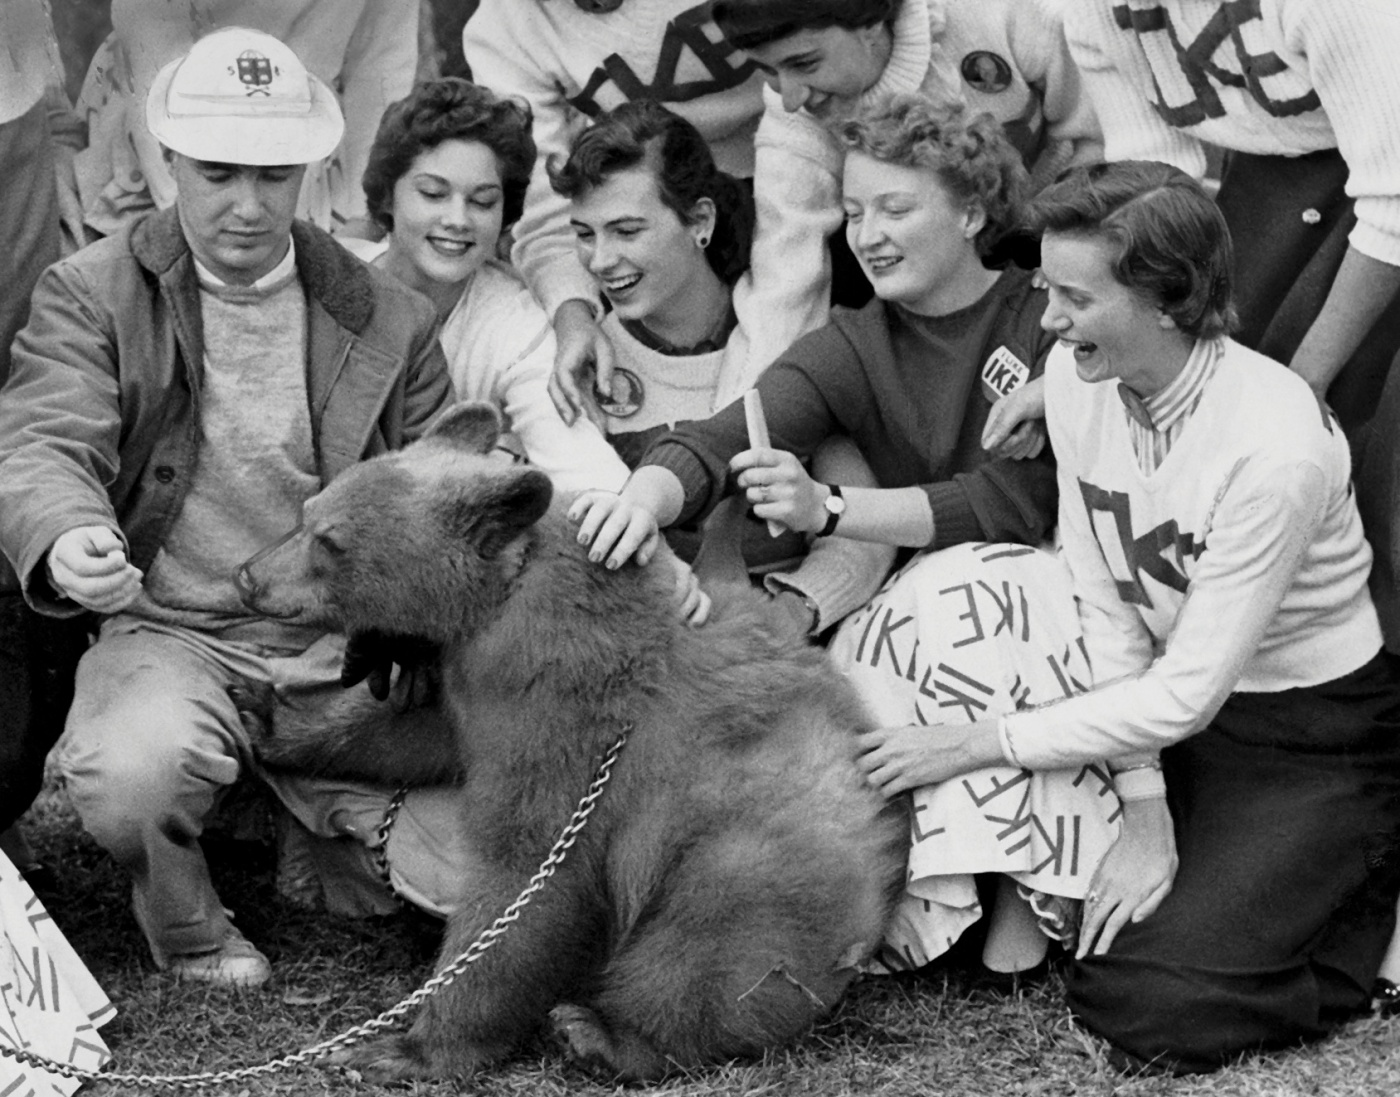 A vintage photograph of a bear being petted by humans.